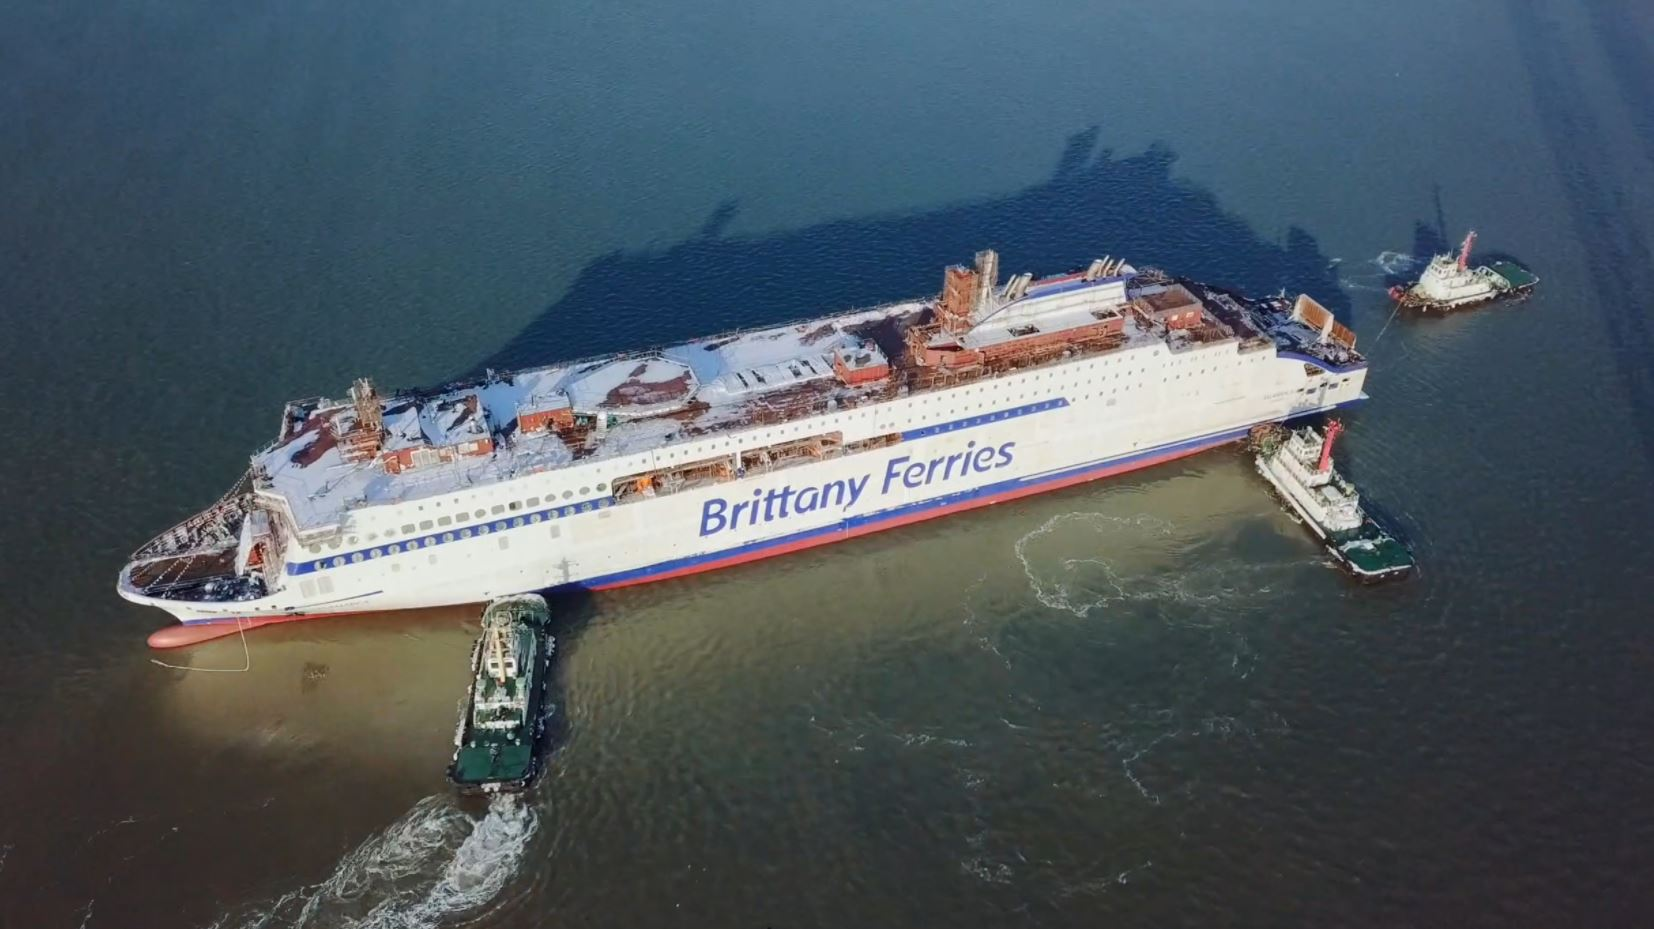 Brittany Ferries launches LNG-powered newbuild